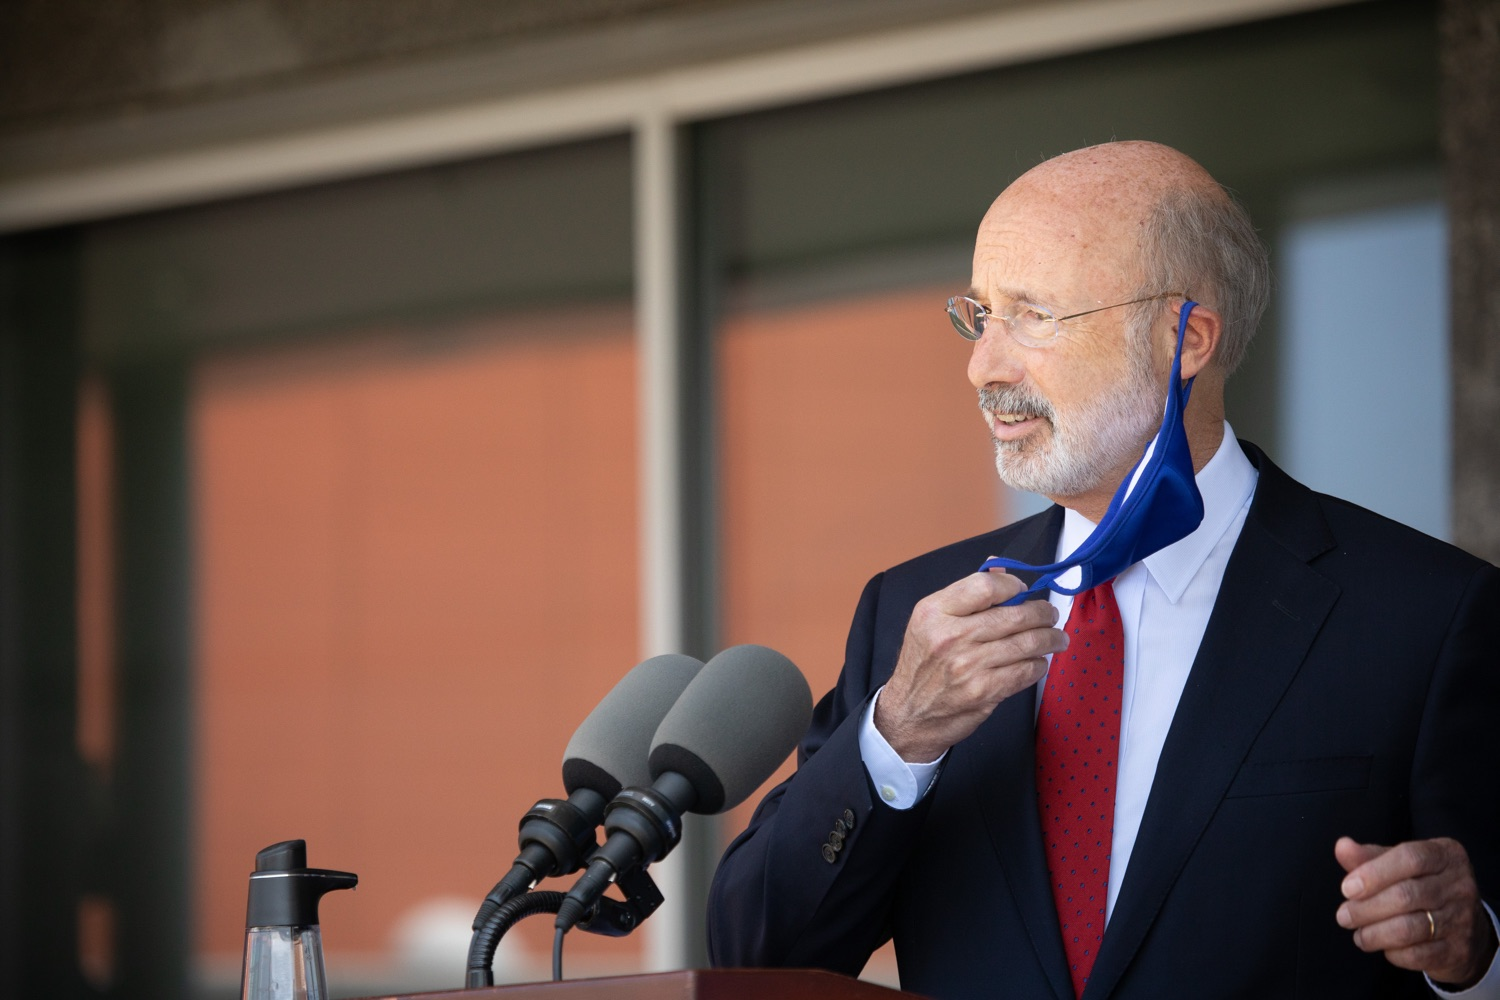 "<a href=""https://filesource.wostreaming.net/commonwealthofpa/photo/18143_gov_cares_dz_19.jpg"" target=""_blank"">⇣ Download Photo<br></a>Pennsylvania Governor Tom Wolf speaking with the press.  Governor Tom Wolf visited the child care center at PSECU headquarters in Harrisburg today to announce $53 million in additional financial support for child care providers that have suffered during COVID-19.  Harrisburg, PA  July 6, 2020.."